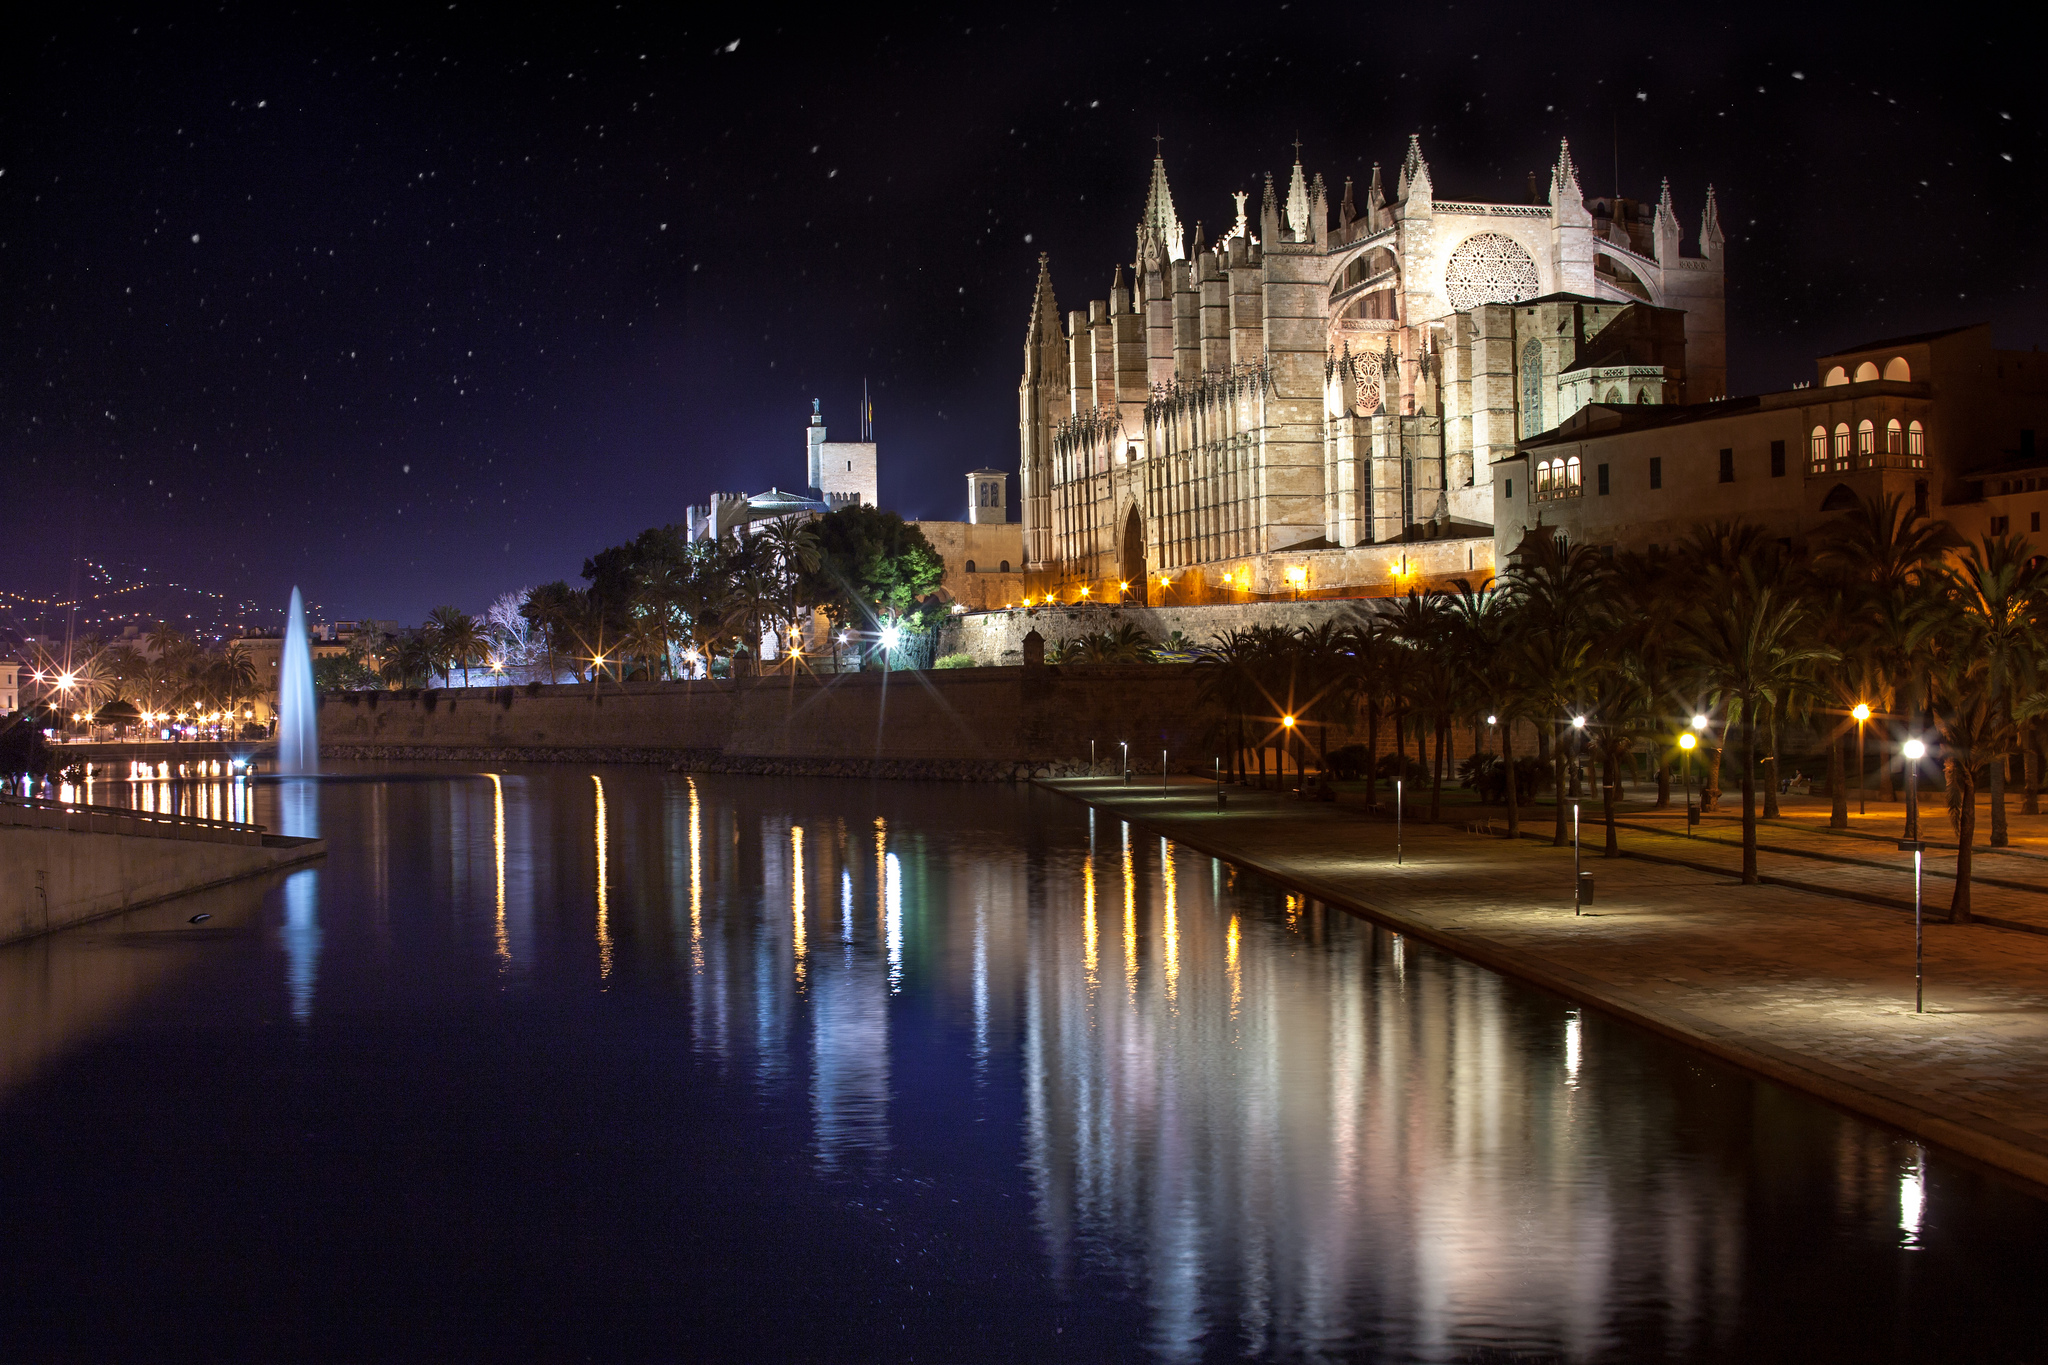 The landmark of Palma de Mallorca is the cathedral